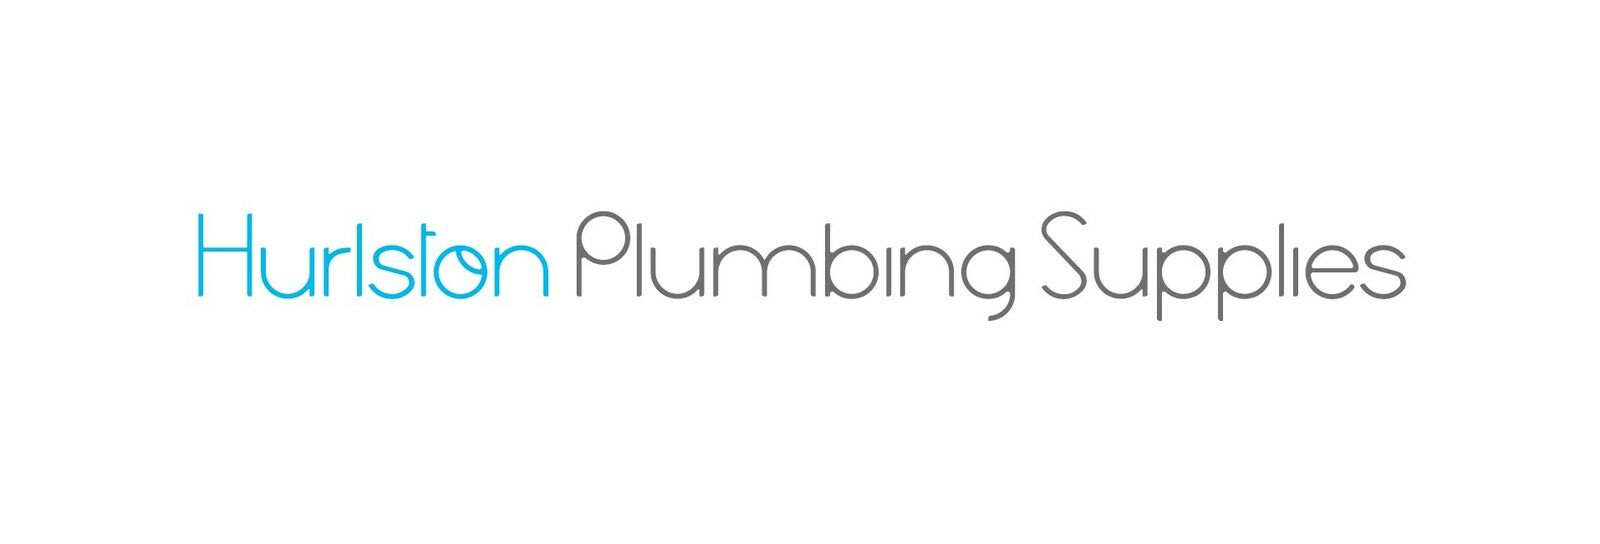 Hurlston Plumbing Supplies